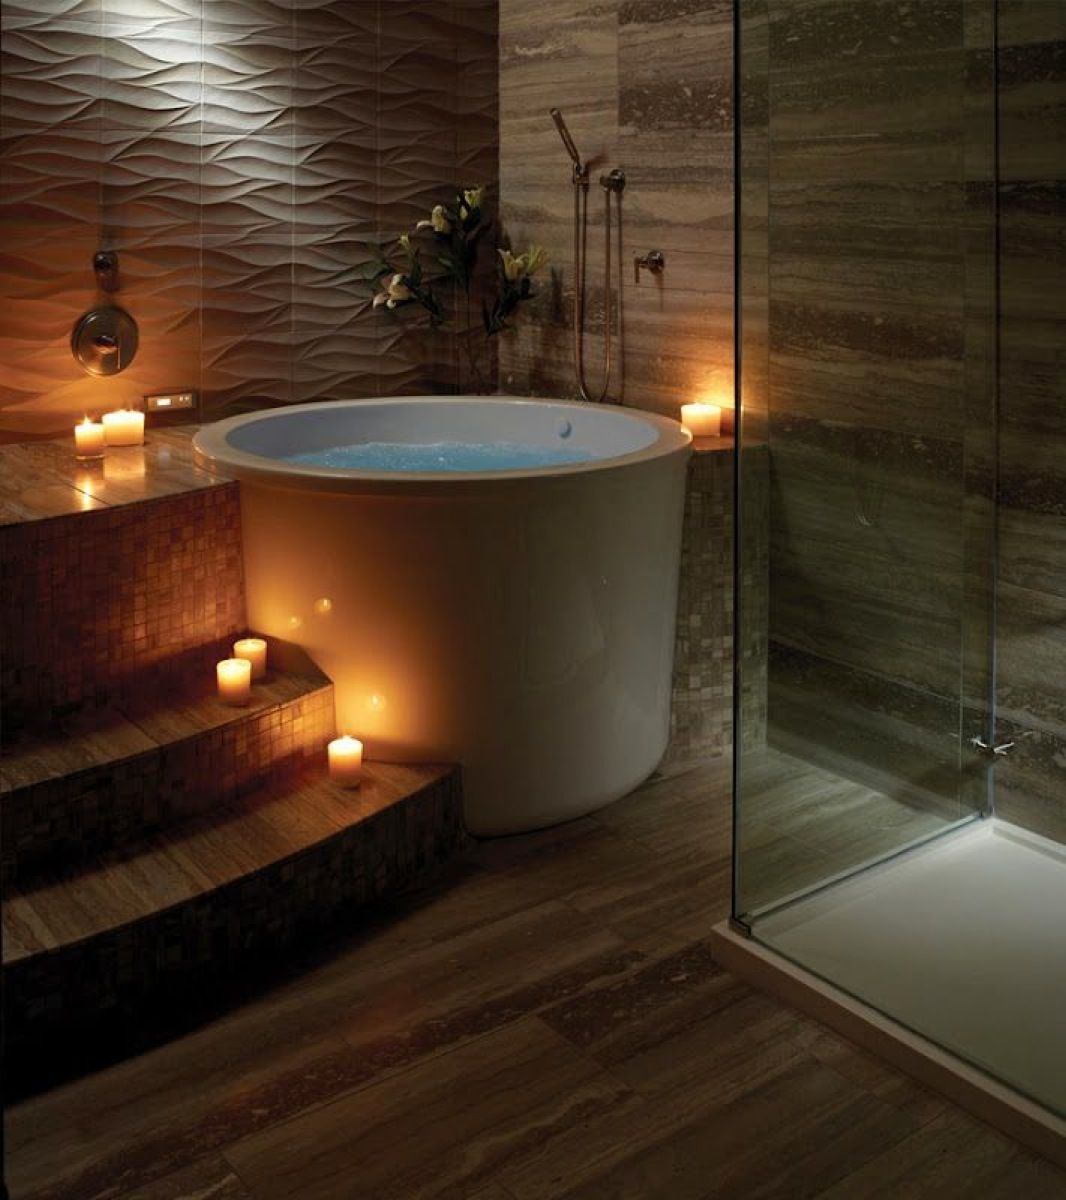 traditional japanese soaking tub. japanese-style bathroom with round soaking tub. traditional japanese tub